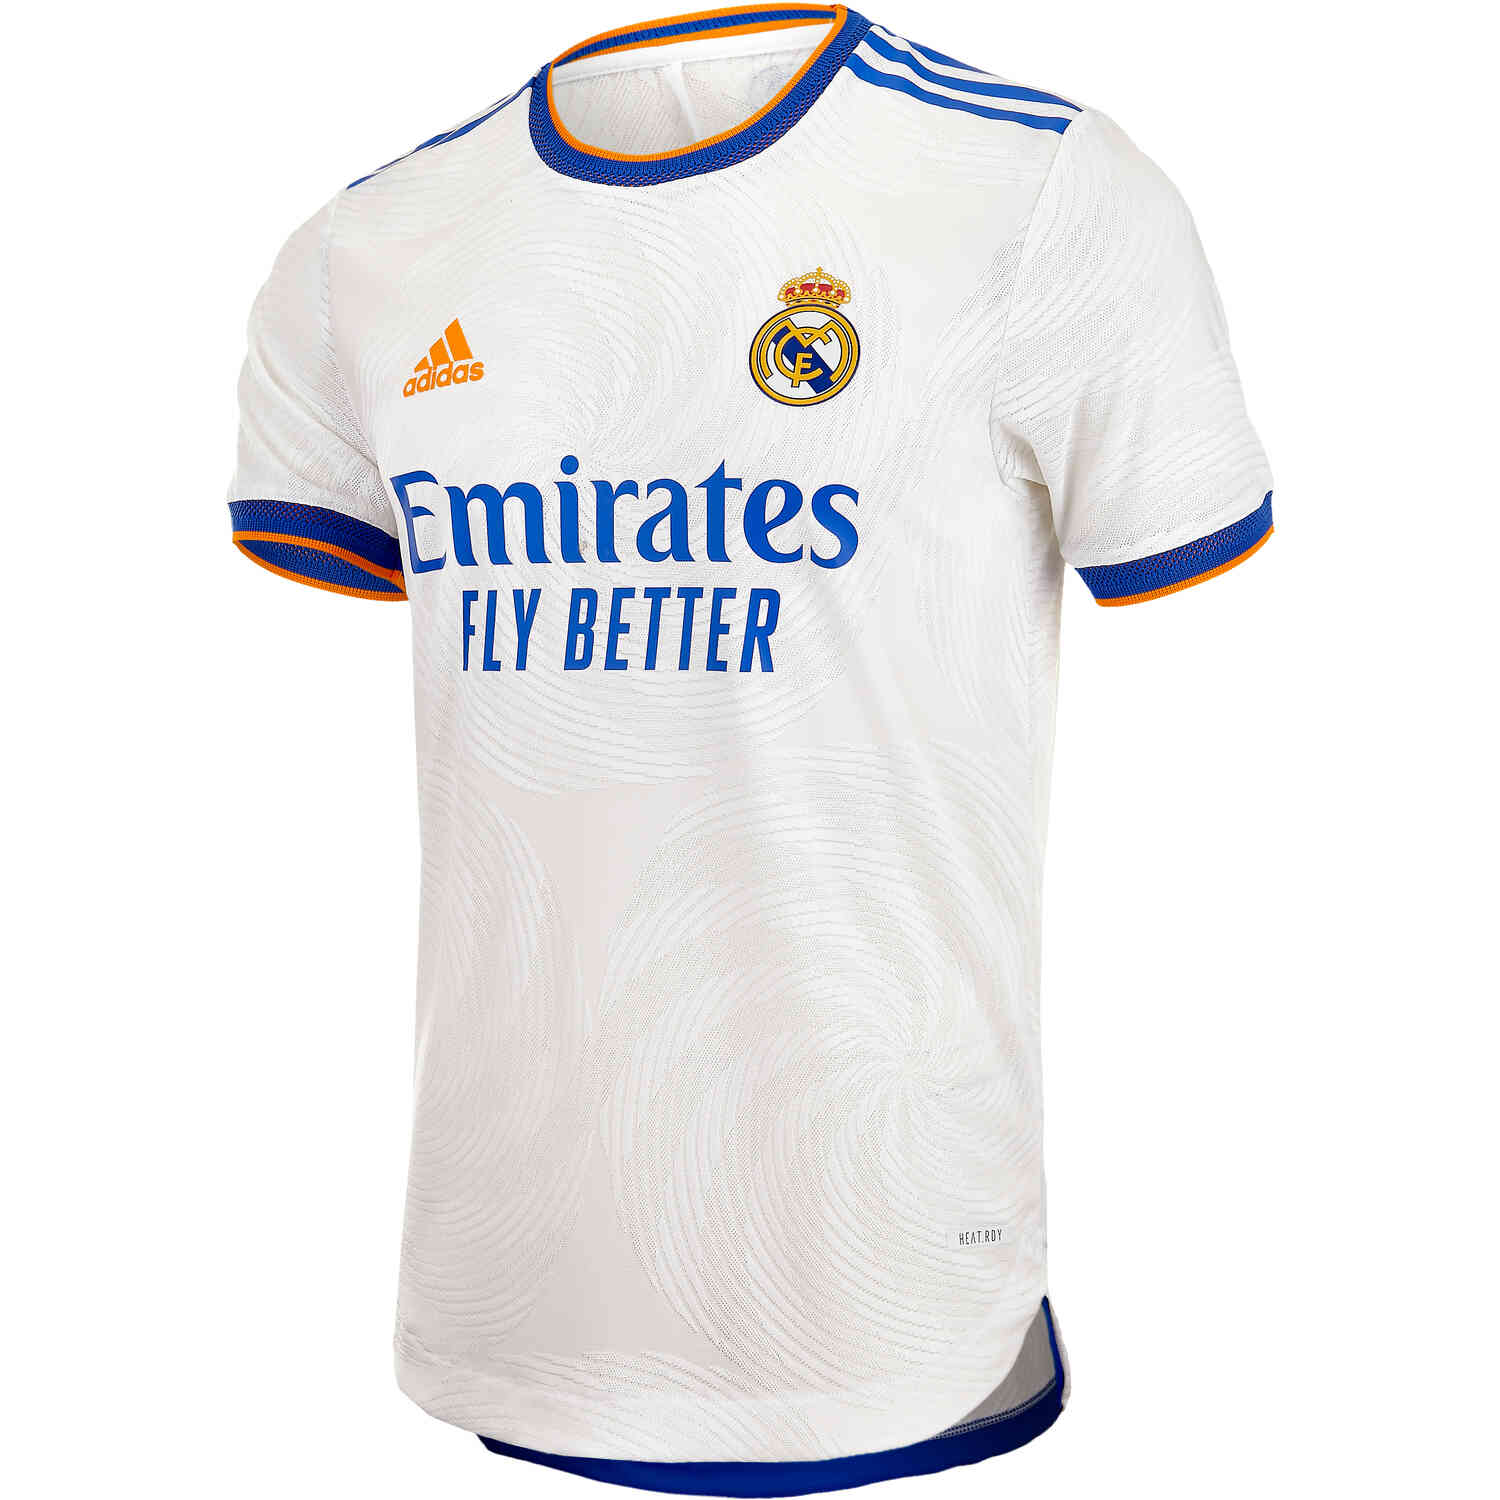 2021/22 adidas Real Madrid Home Authentic Jersey - SoccerPro